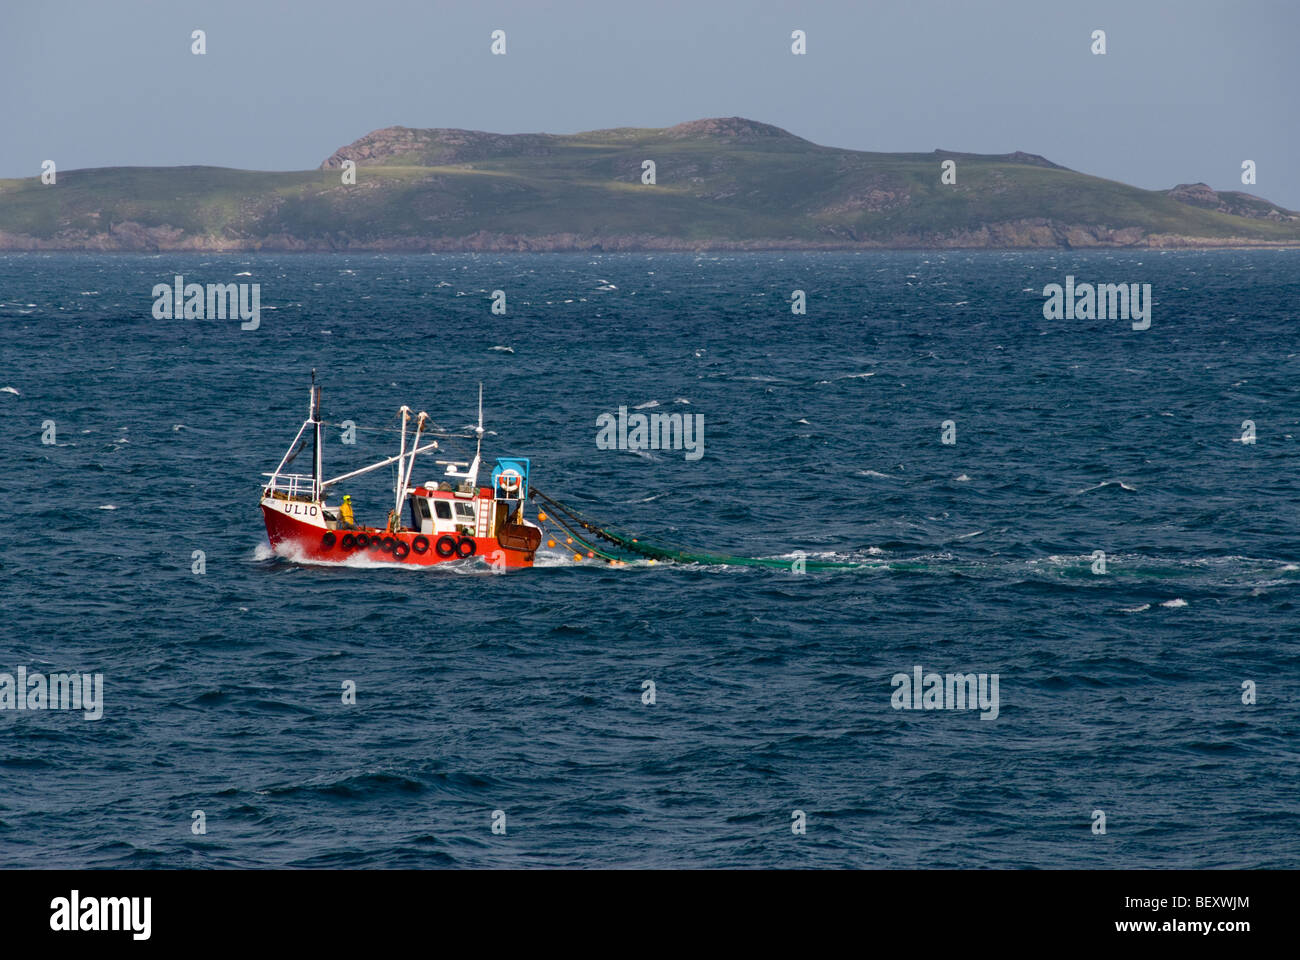 Fishing boat pulling net in the Minch near Ullapool, Scotland Stock Photo